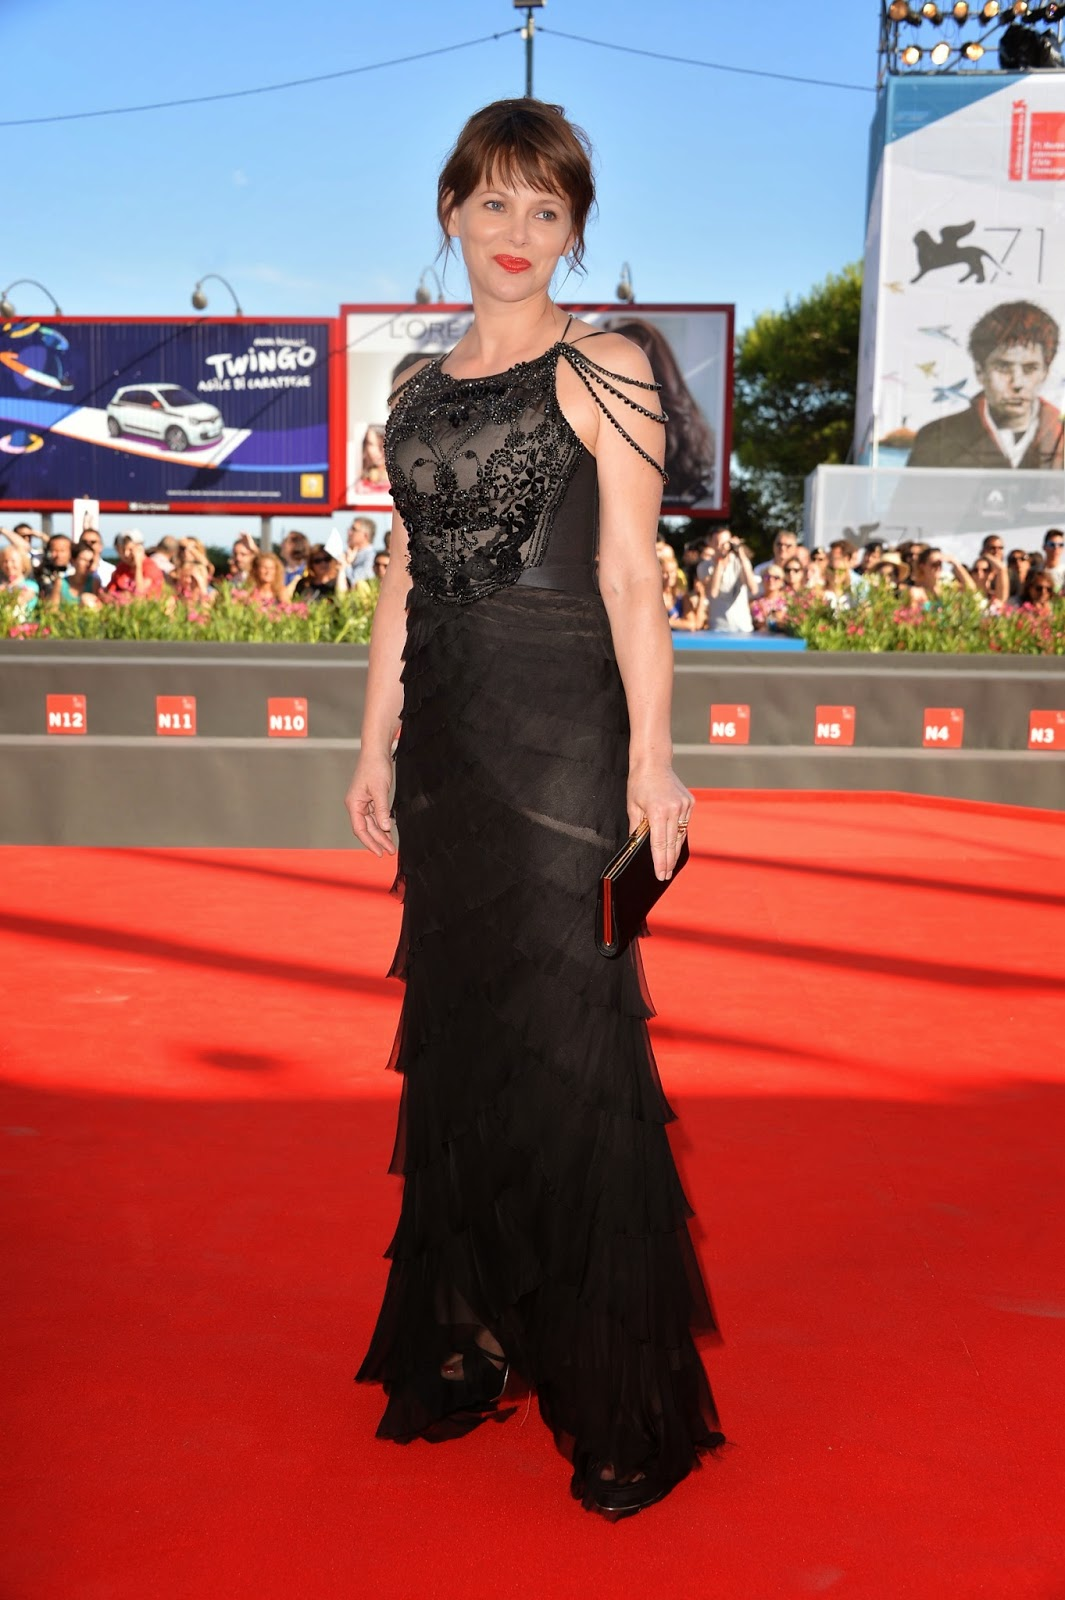 Barbora Bobulova on Red Carpet